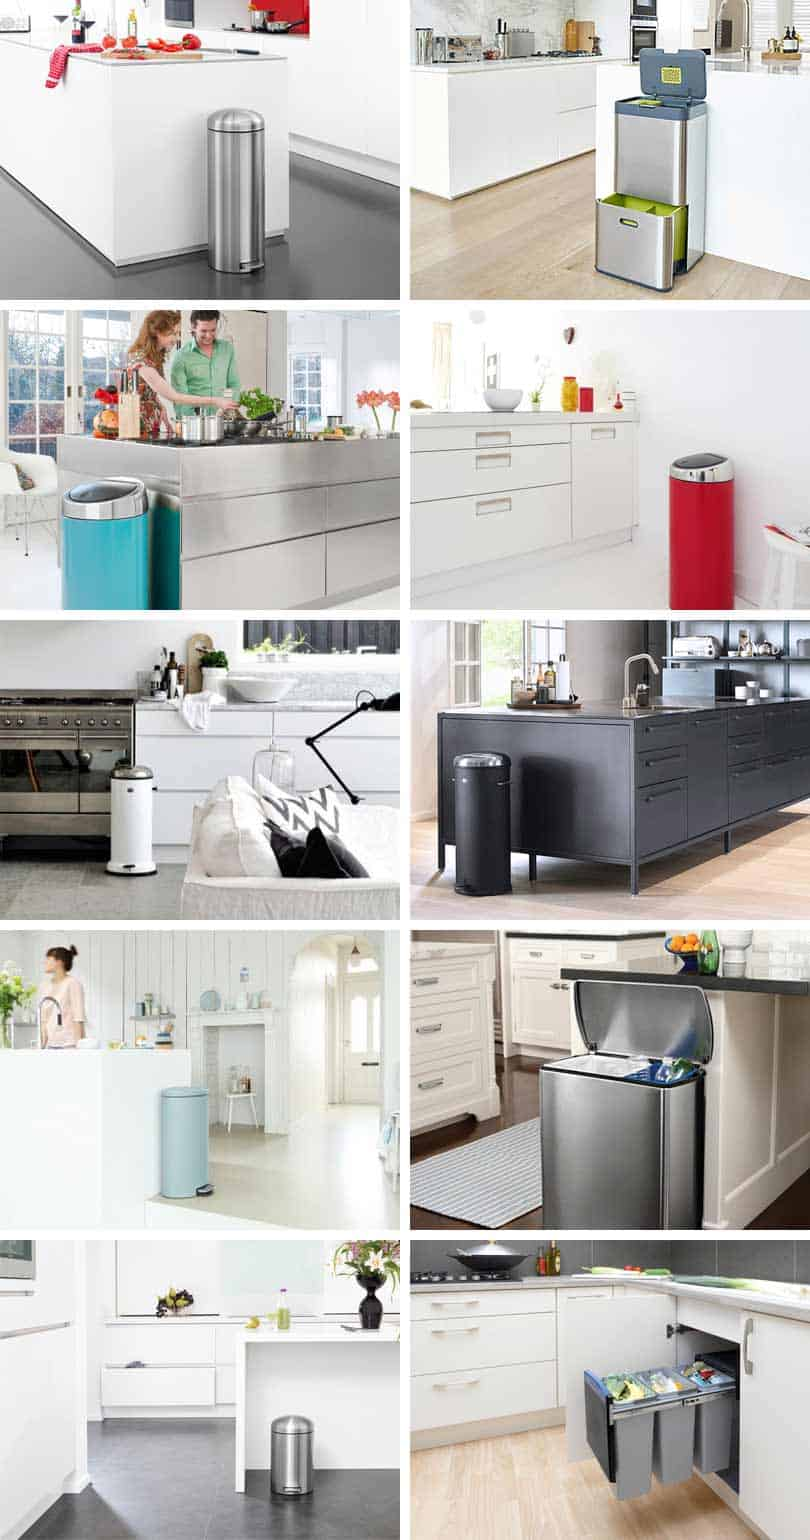 Kitchen Trash Cans and Recycling Bins - What to look for?